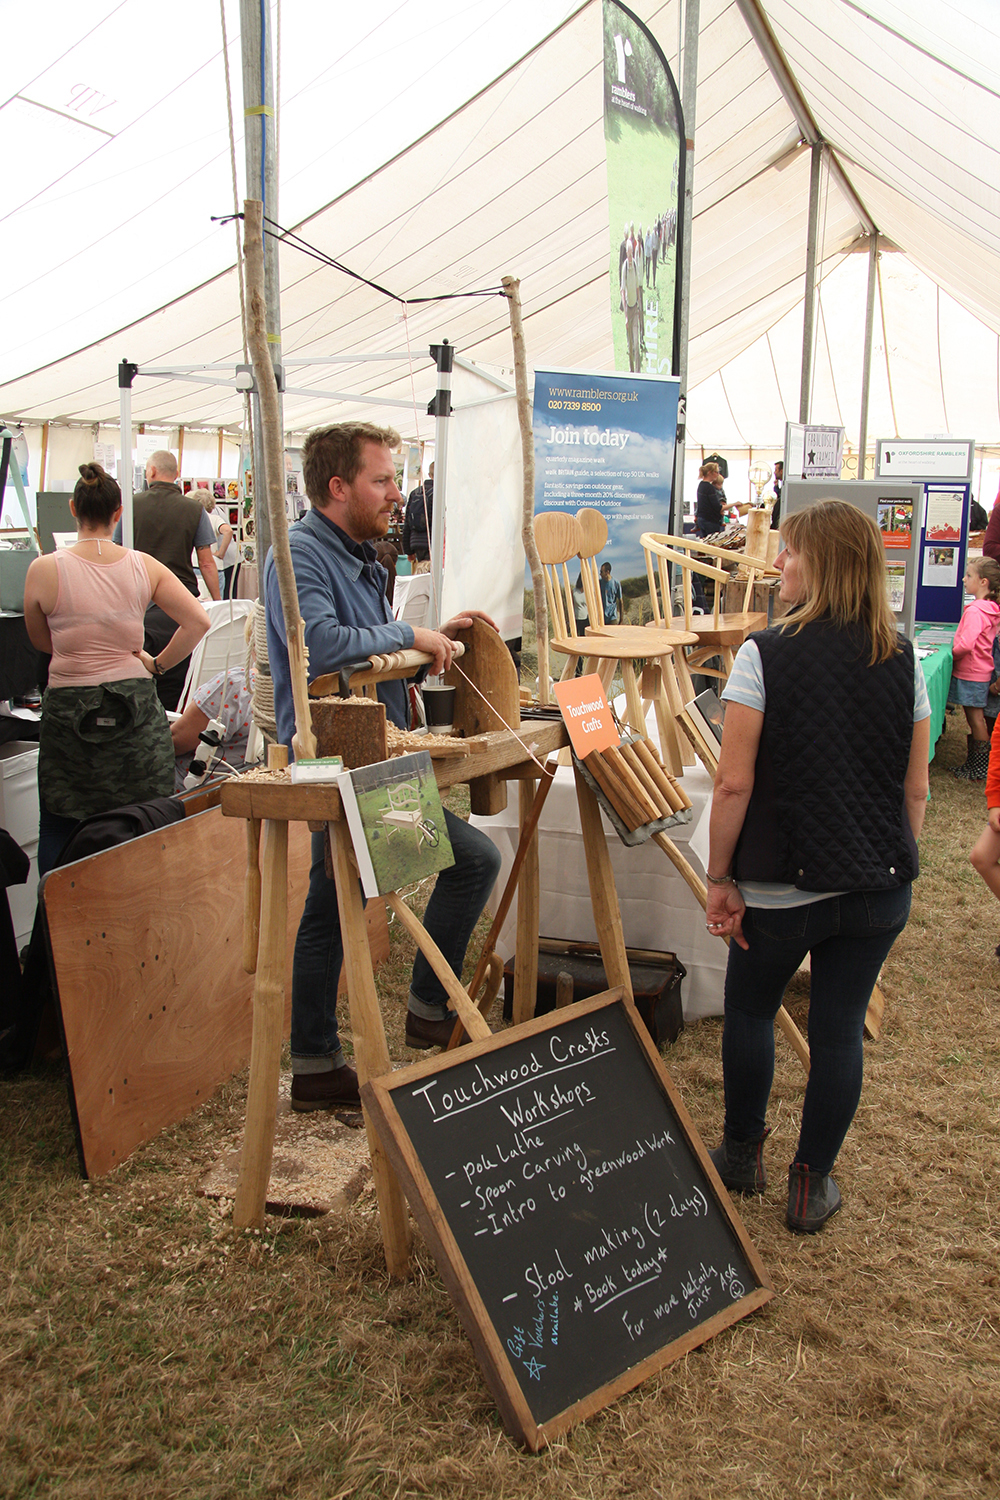 White Horse Show - Uffington - Oxfordshire - County - Country - Show - Craft stalls